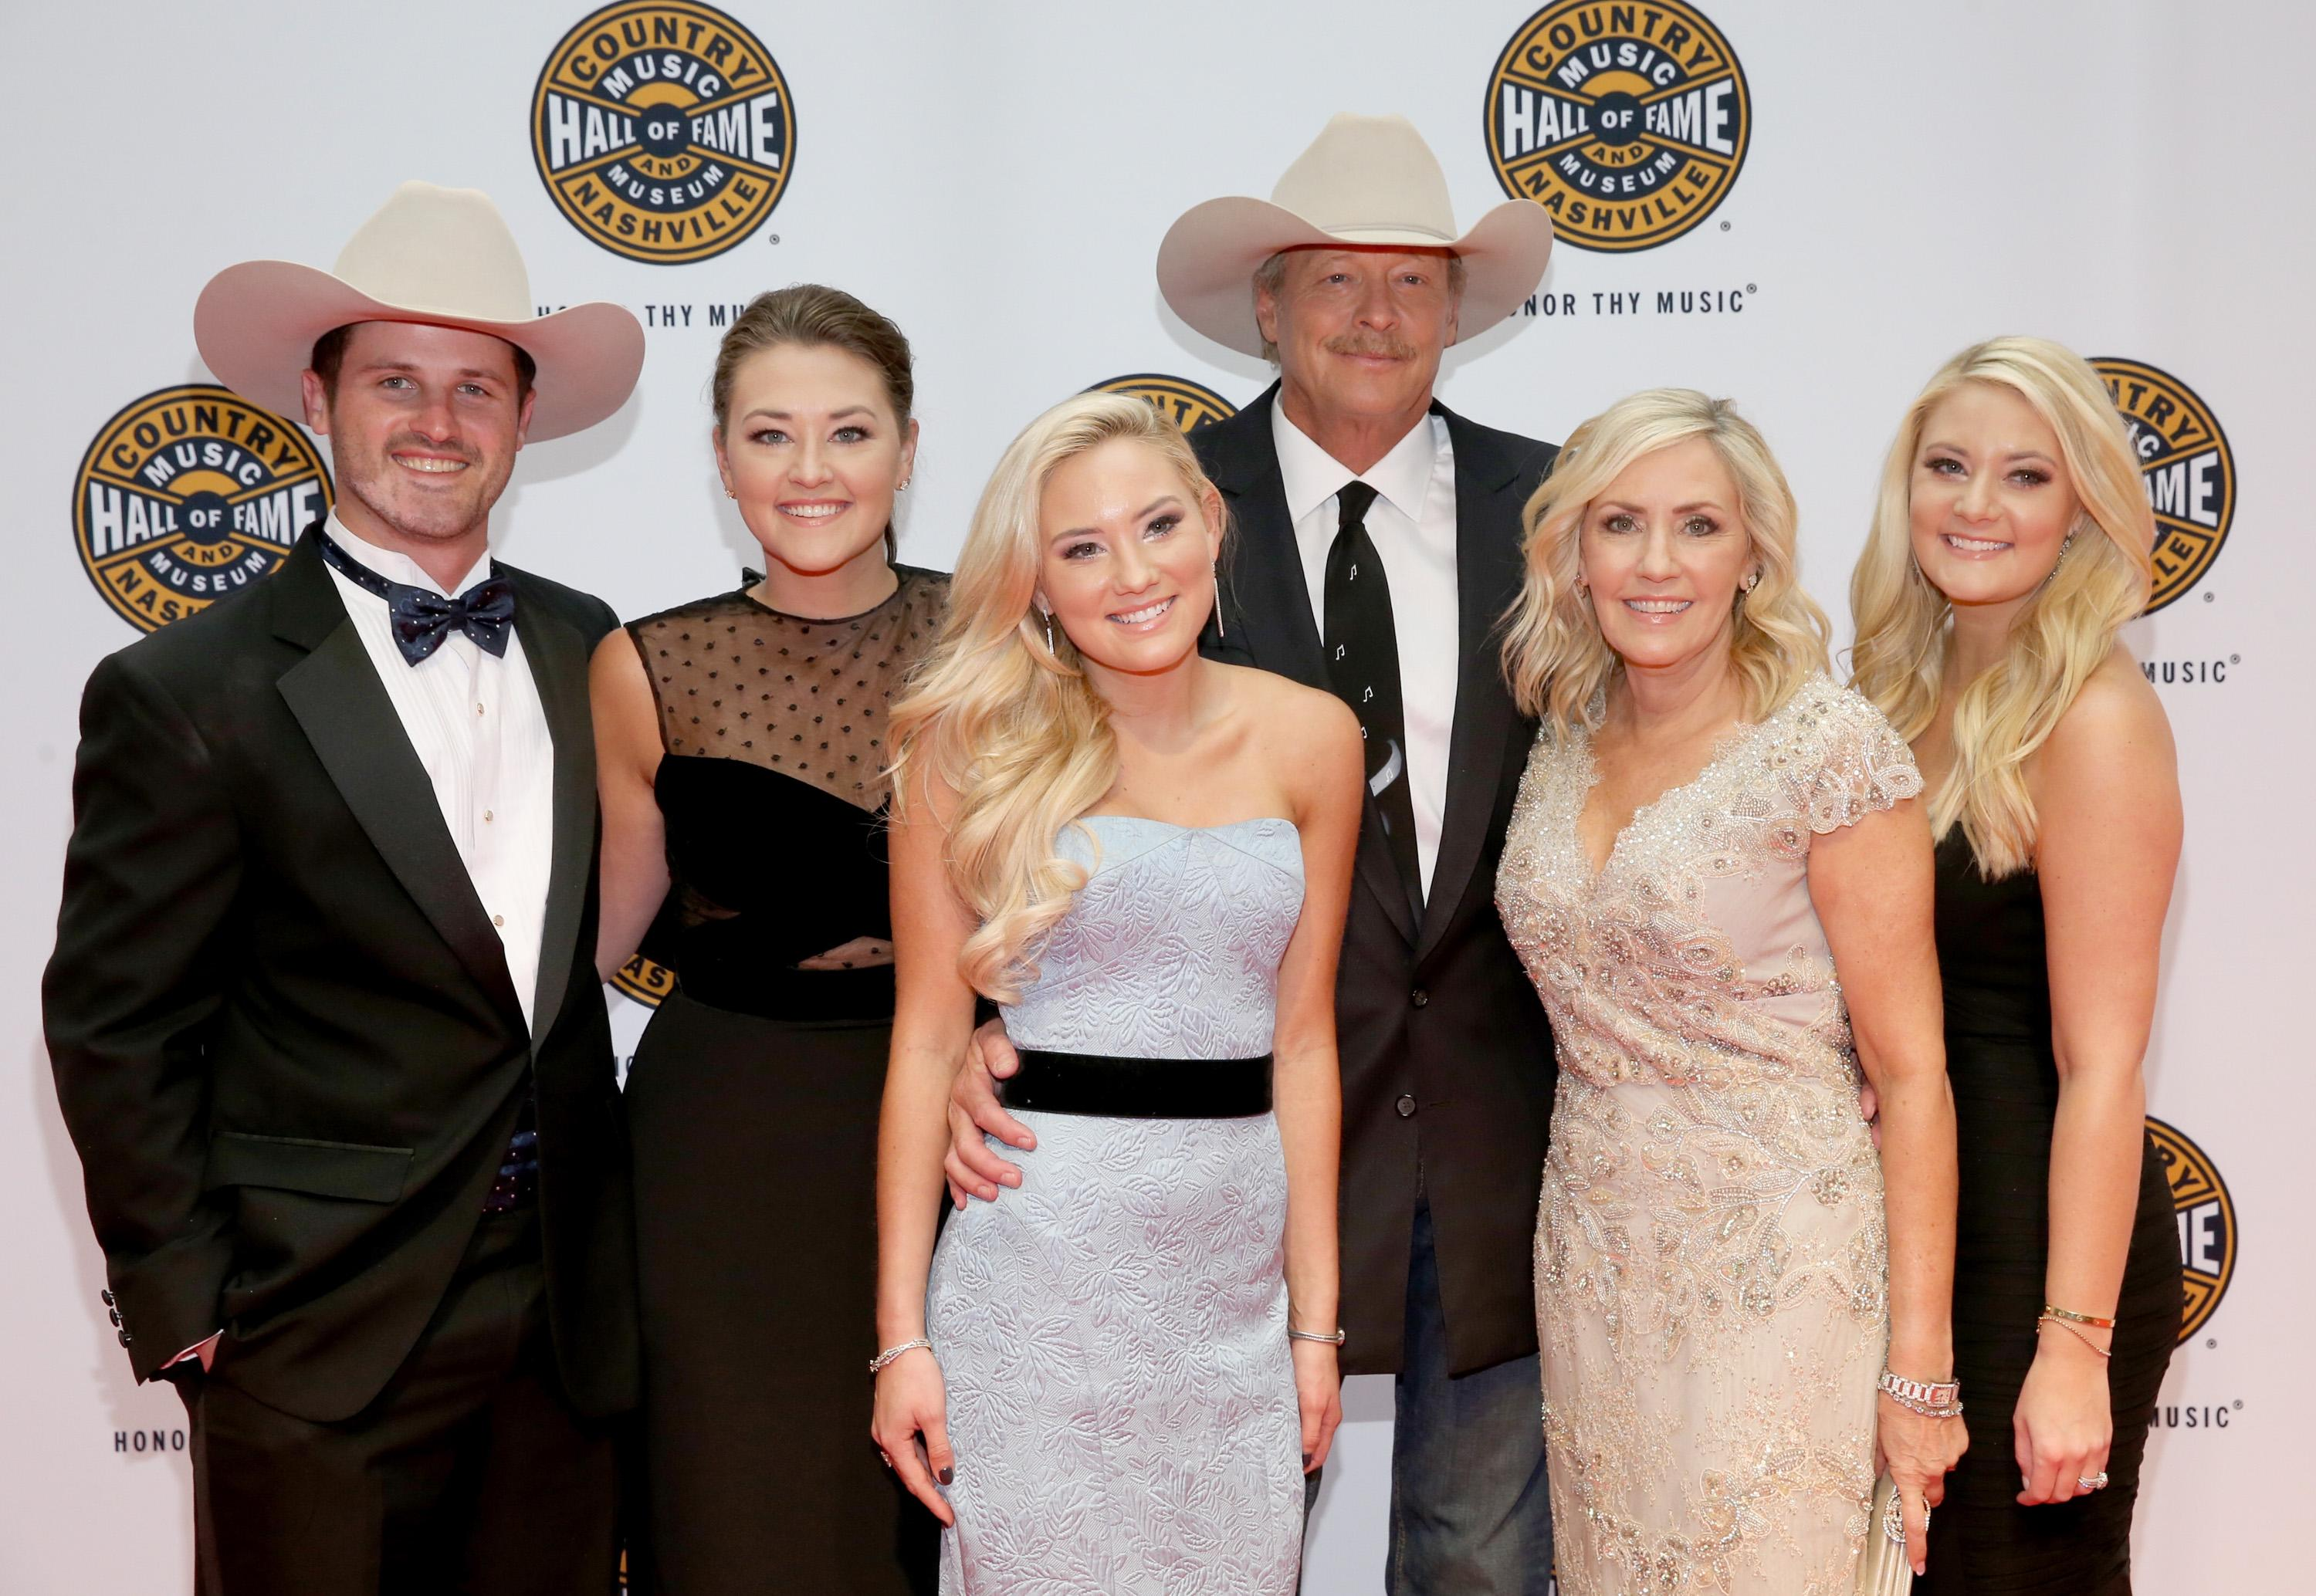 Country star Alan Jackson's son-in-law dies unexpectedly after a fall — less than one year after his 'fairytale' wedding with Mattie Jackson